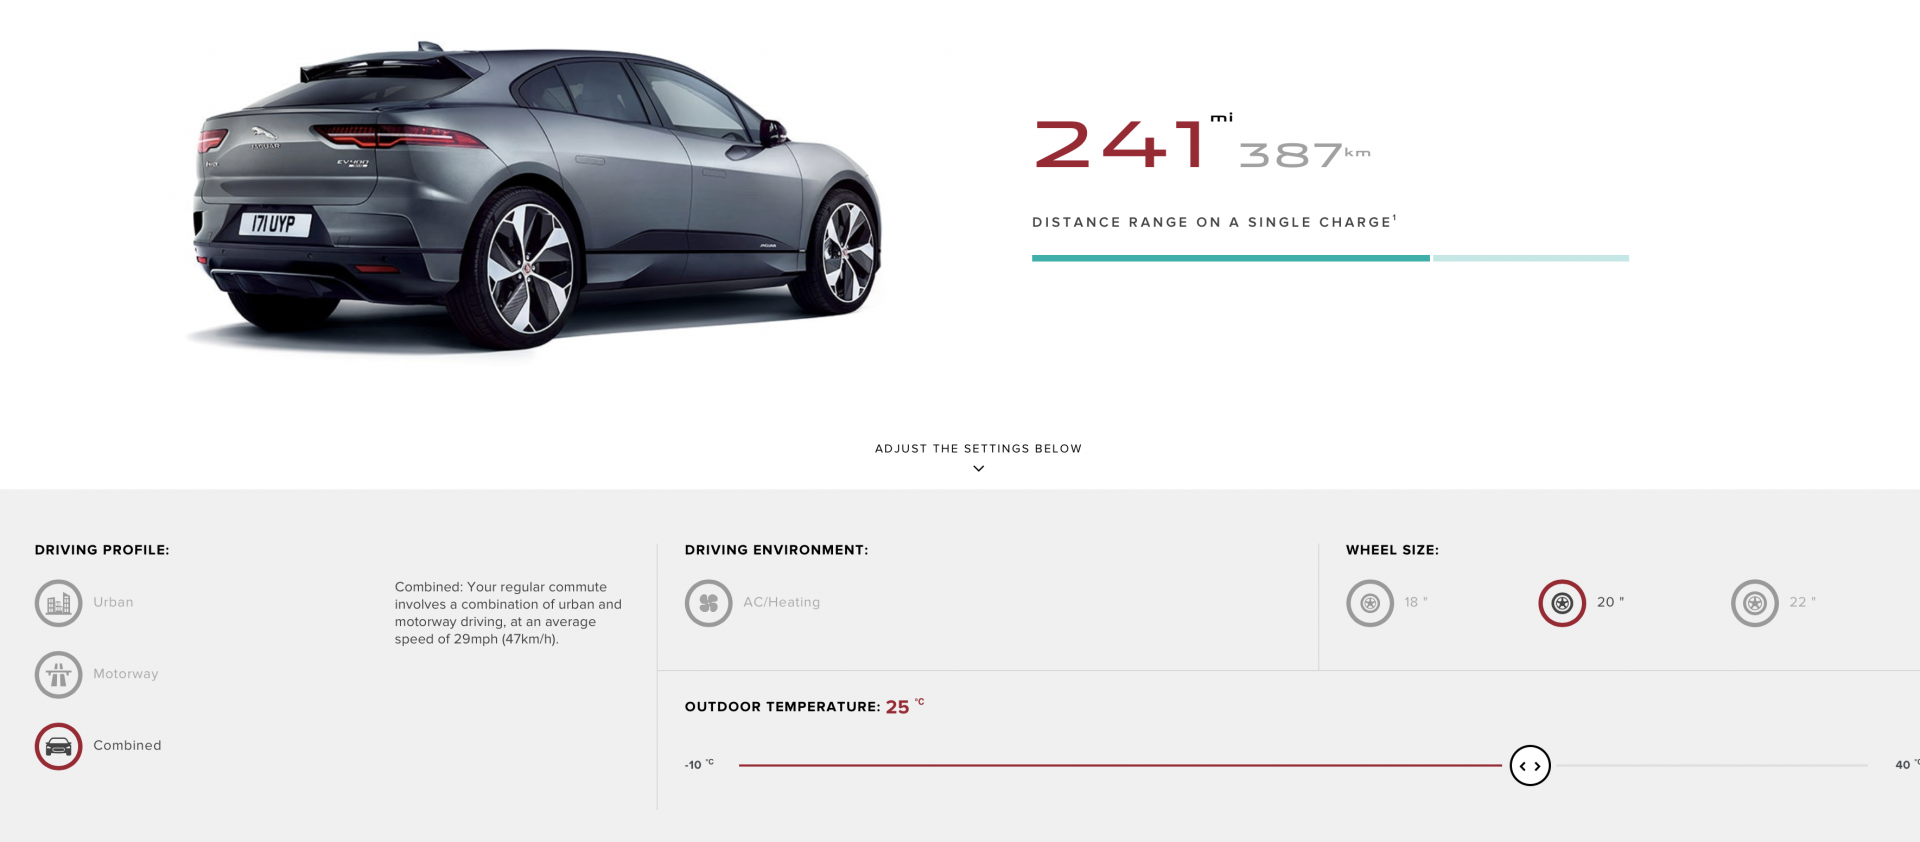 This is Jaguar's calculation of the expected range on my I-Pace. Note the 20in wheel and Combined options. All-urban produces the highest range at 280 miles while all-motorway reduces the range to 192. If I'd fitted the smaller 18in wheels to the I-Pace, the 241 miles would increase to 258. This is something fossil-fuel car drivers don't think about, but it's just as relevant to fuel consumption on any car.